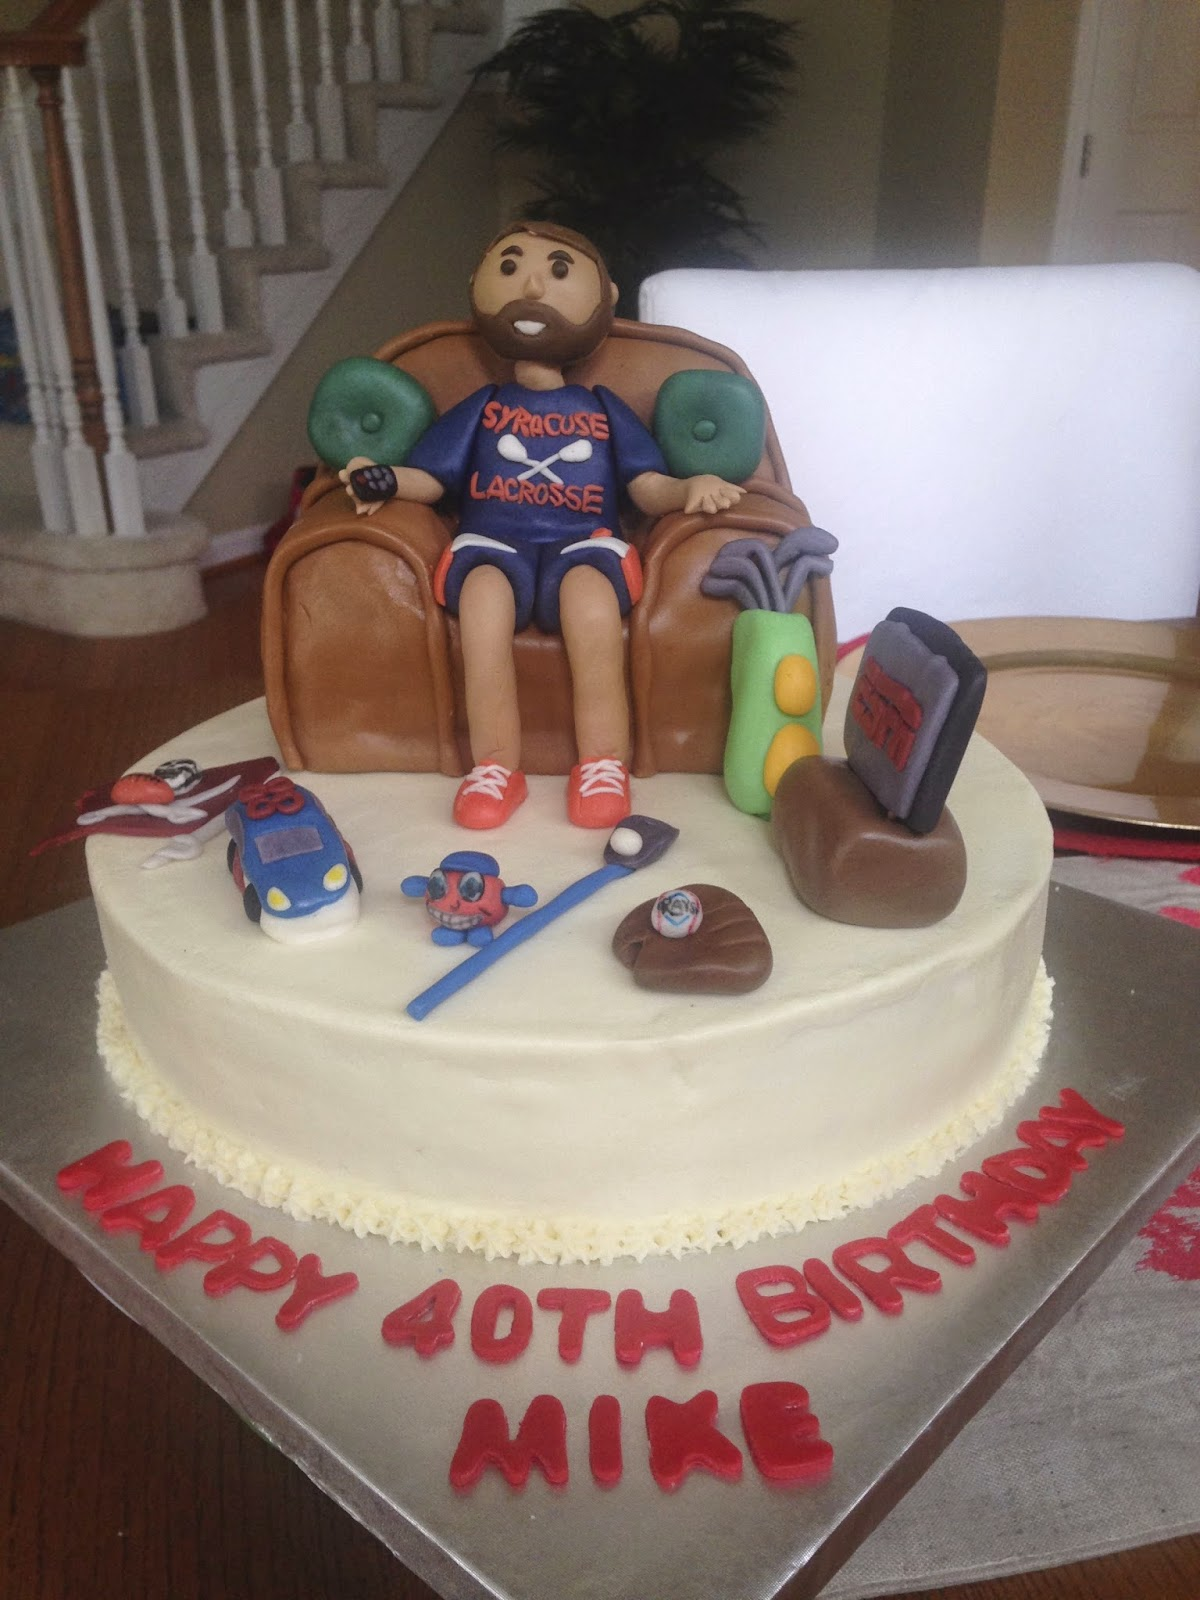 How To Make A Lacrosse Cake